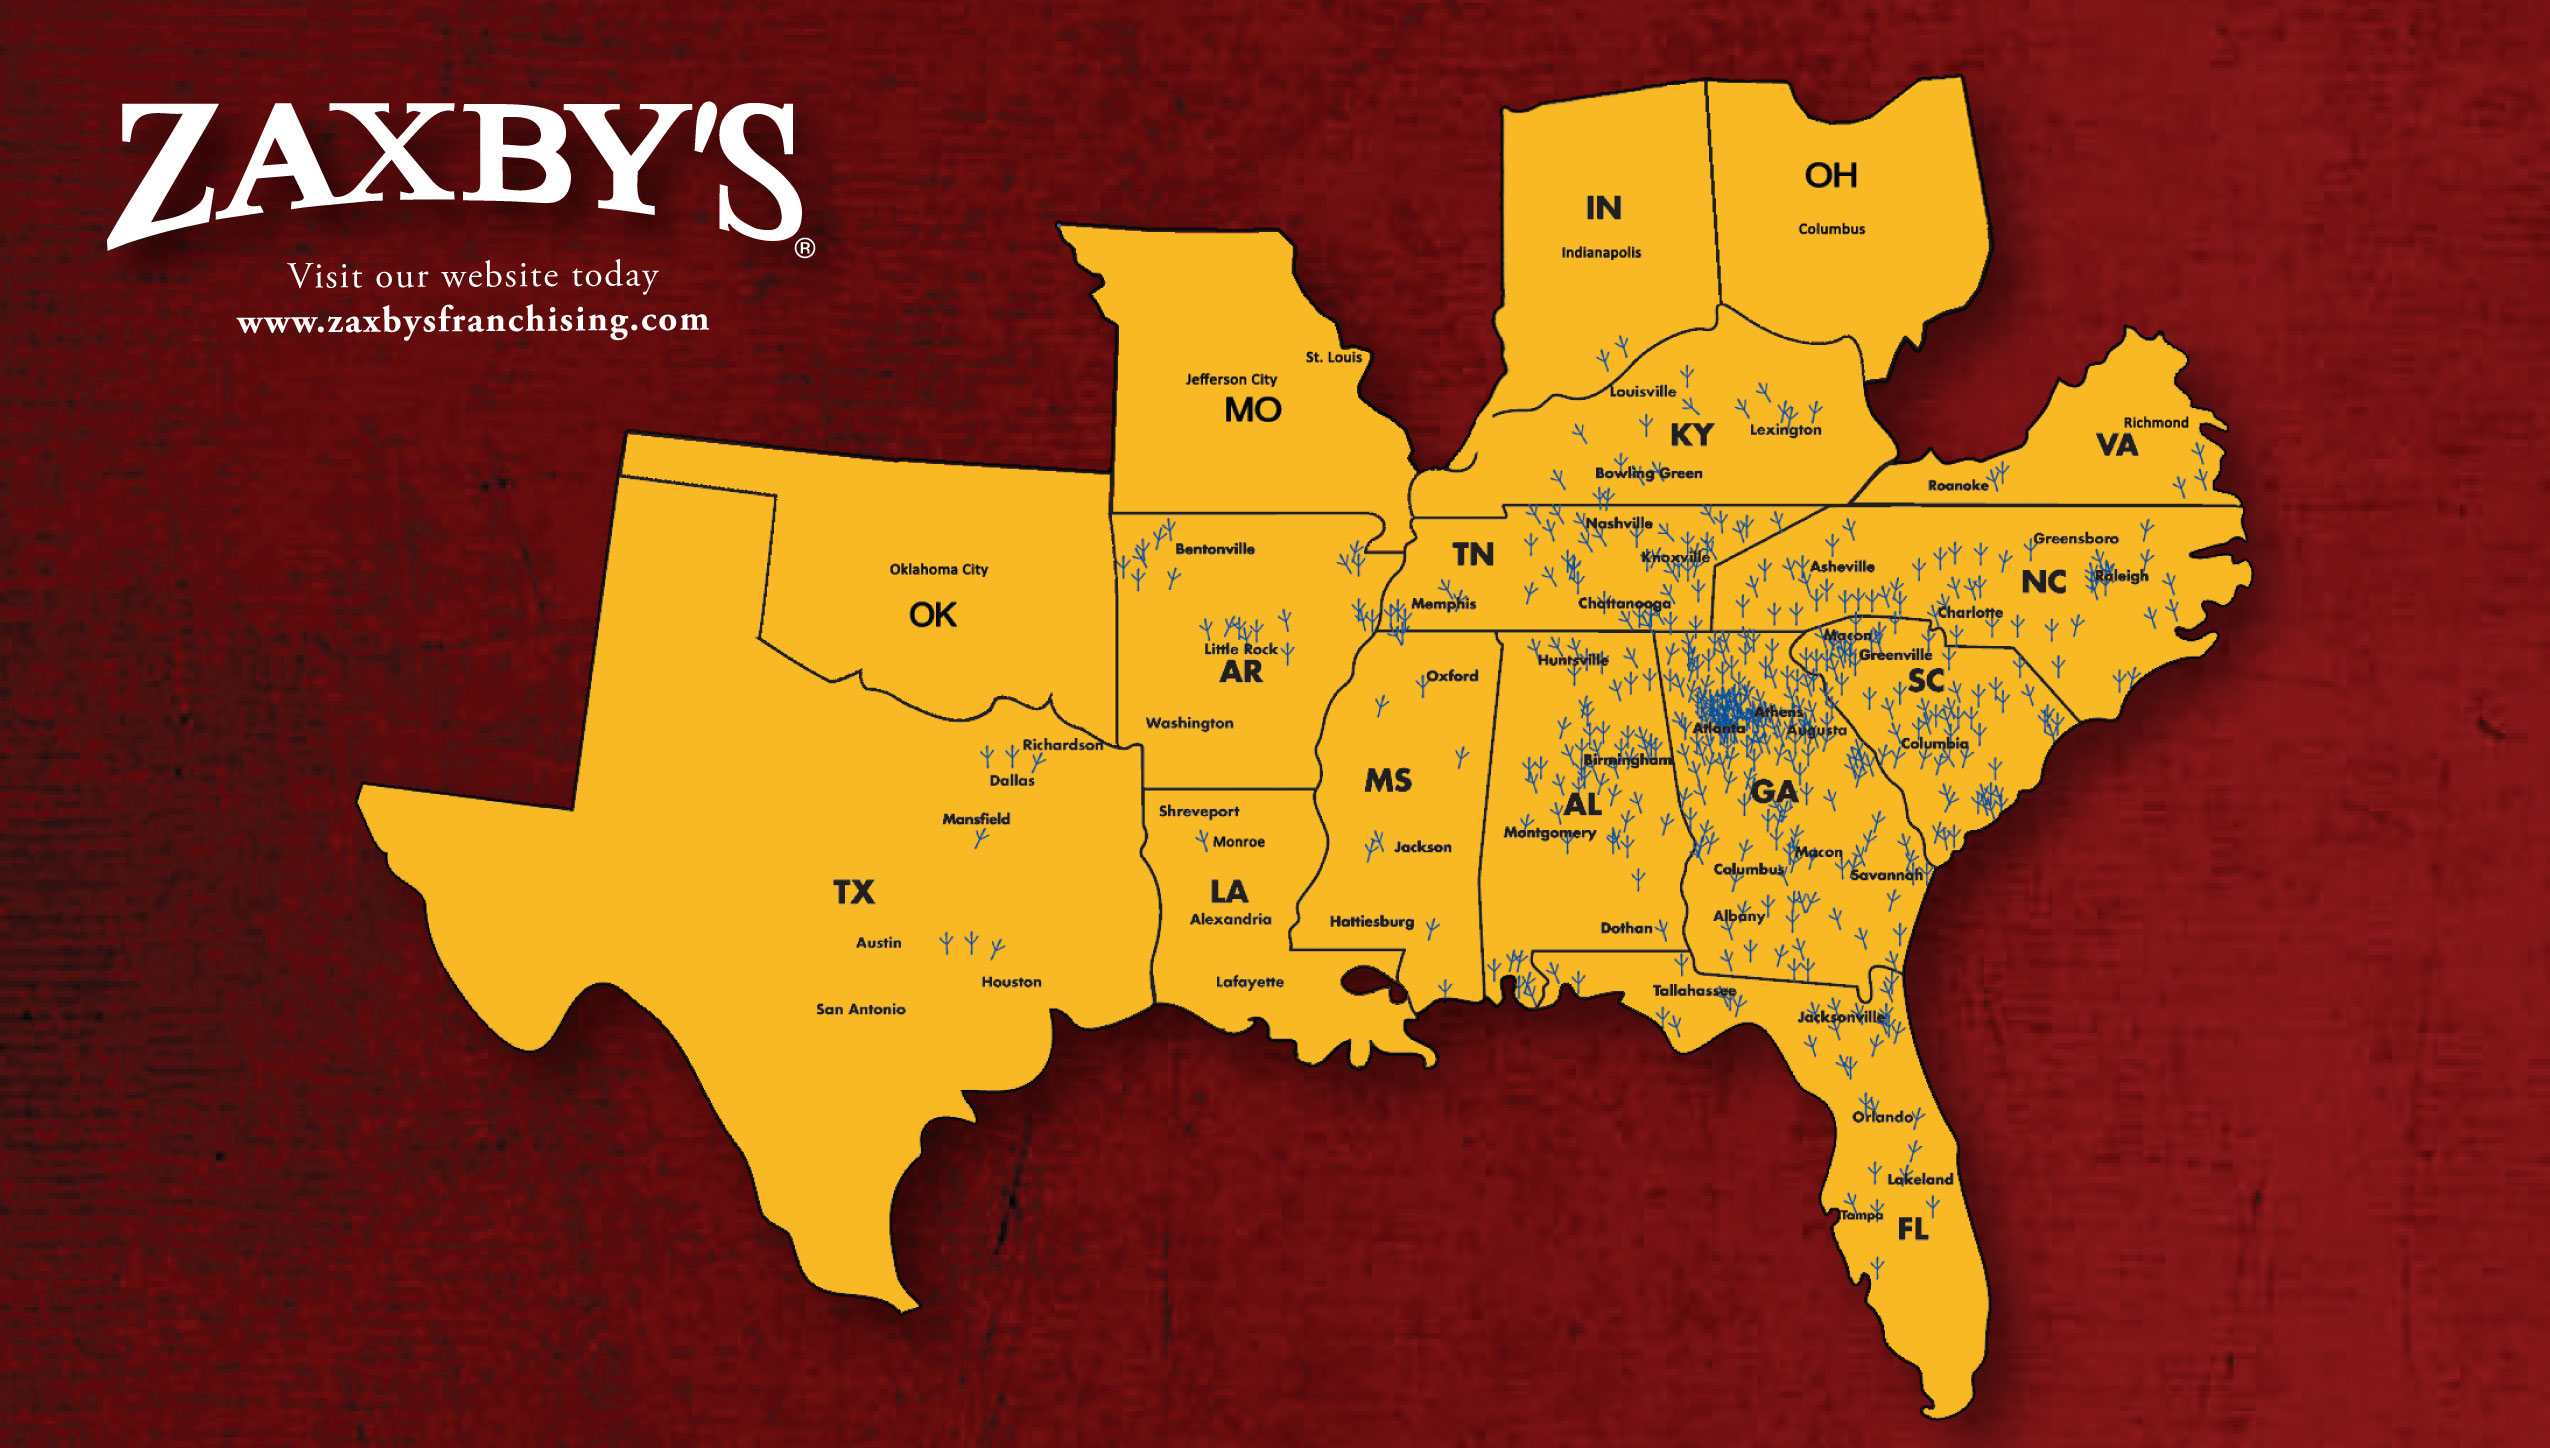 ck/ - Food & Cooking Zaxbys Map on chic fil a map, quiznos map, kfc map, petco map, little caesars map, bojangles map, motel 6 map, golden corral map, panera bread map, ihop map, papa johns map, longhorn steakhouse map, chuck e cheese map, cici's pizza map, chipotle map,